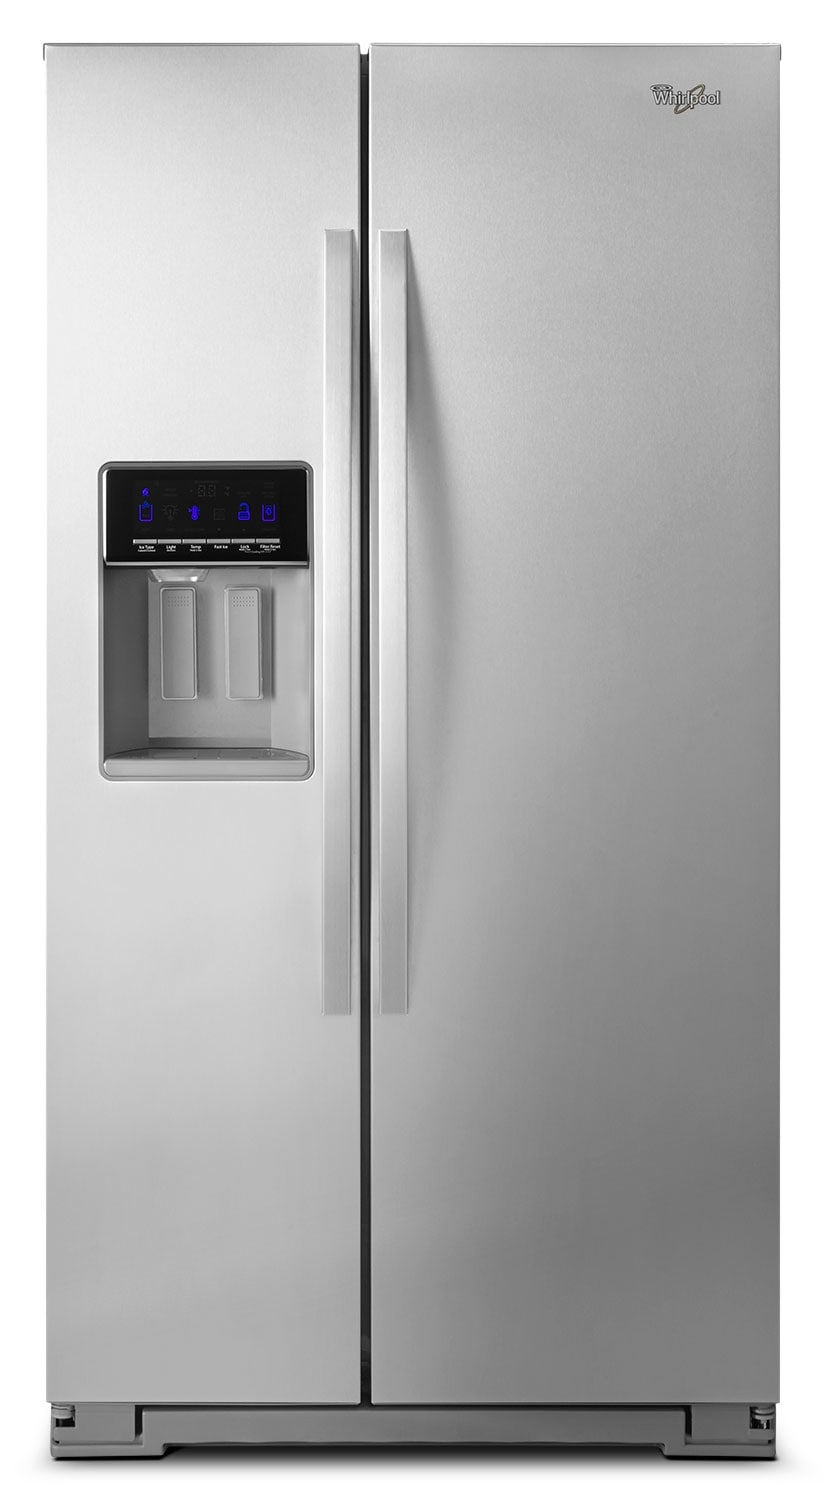 Refrigerators and Freezers - Whirlpool 21 Cu. Ft. Side-by-Side Refrigerator – WRS571CIDM